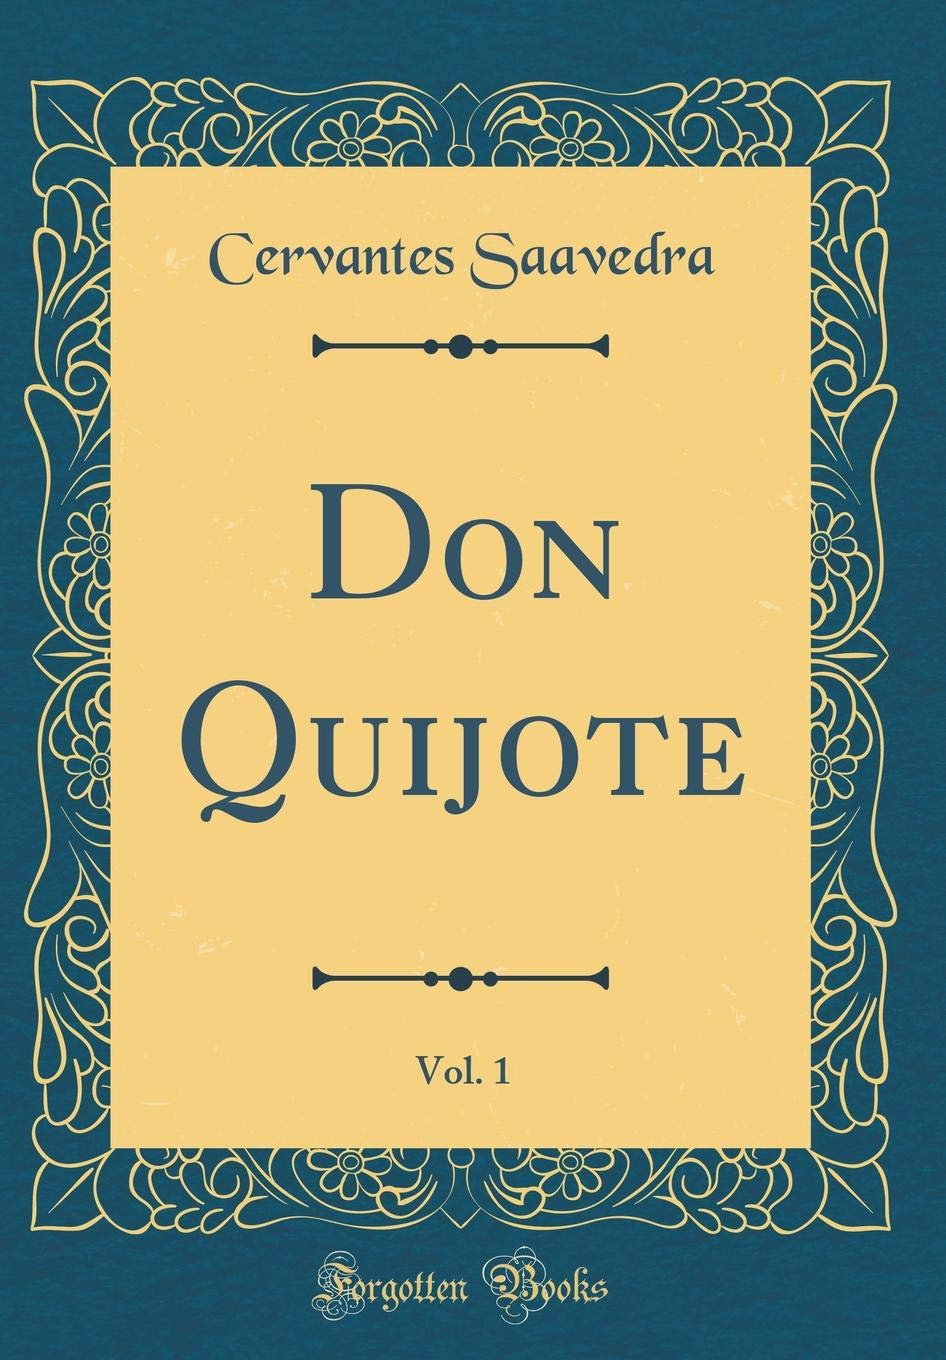 Don Quijote, Vol. 1 (Classic Reprint): Amazon.es: Saavedra, Cervantes: Libros